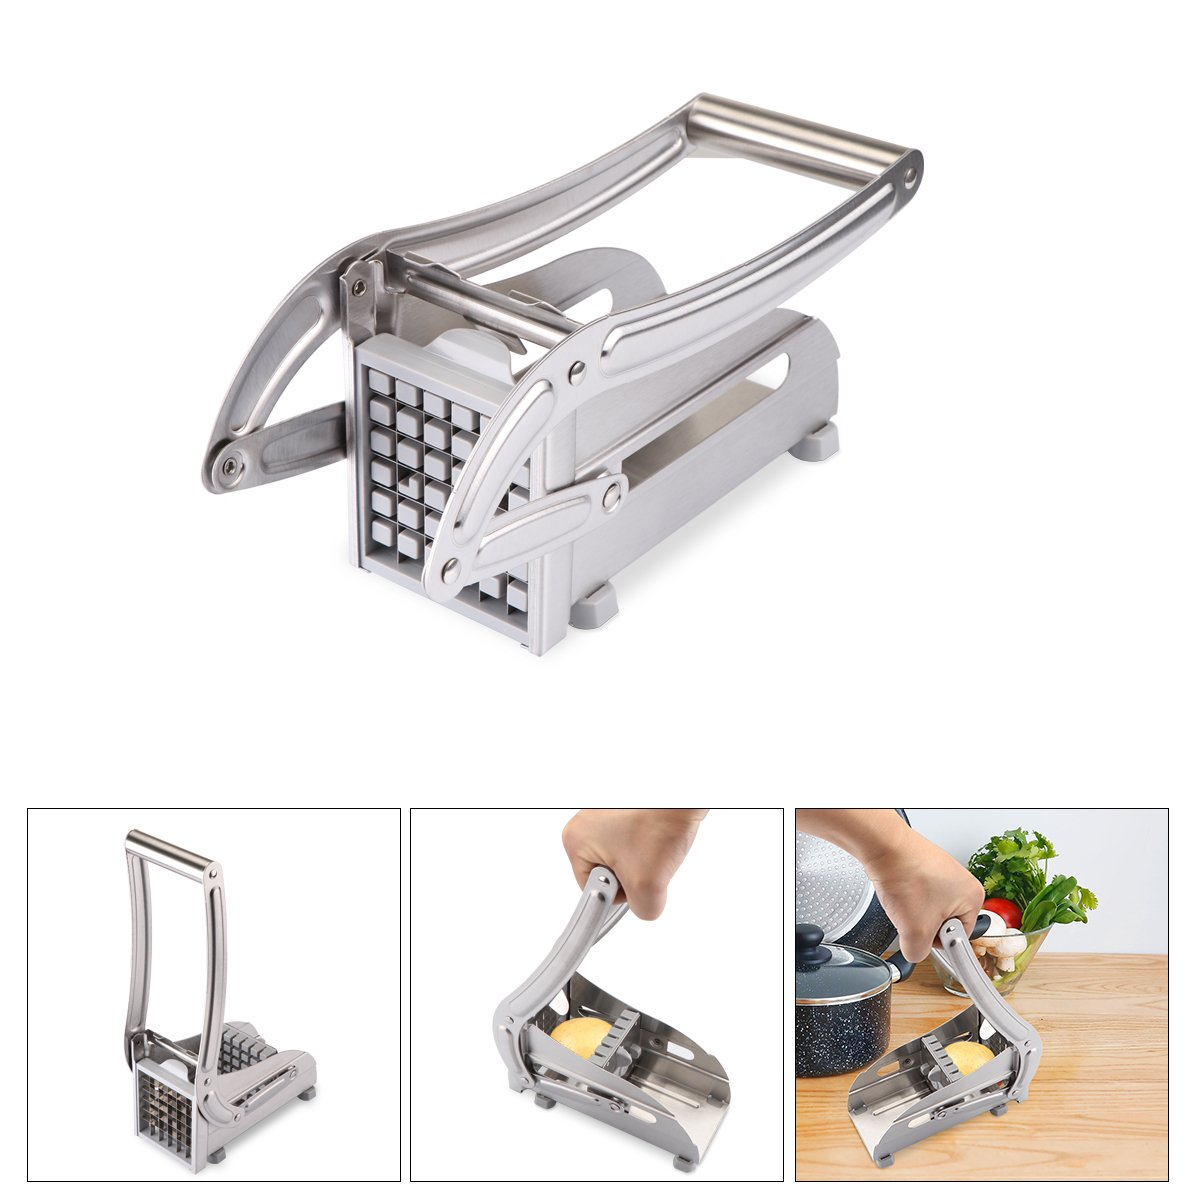 Stainless Steel French Fry Potato Cutter Vingtank Multipurpose French Fry Cutter Slicer Chipper with 2 Interchangeable Heavy-Duty Blades for Potatoes, Carrots, Cucumbers, Zucchinis, Radishes, Yams, Apples and More.